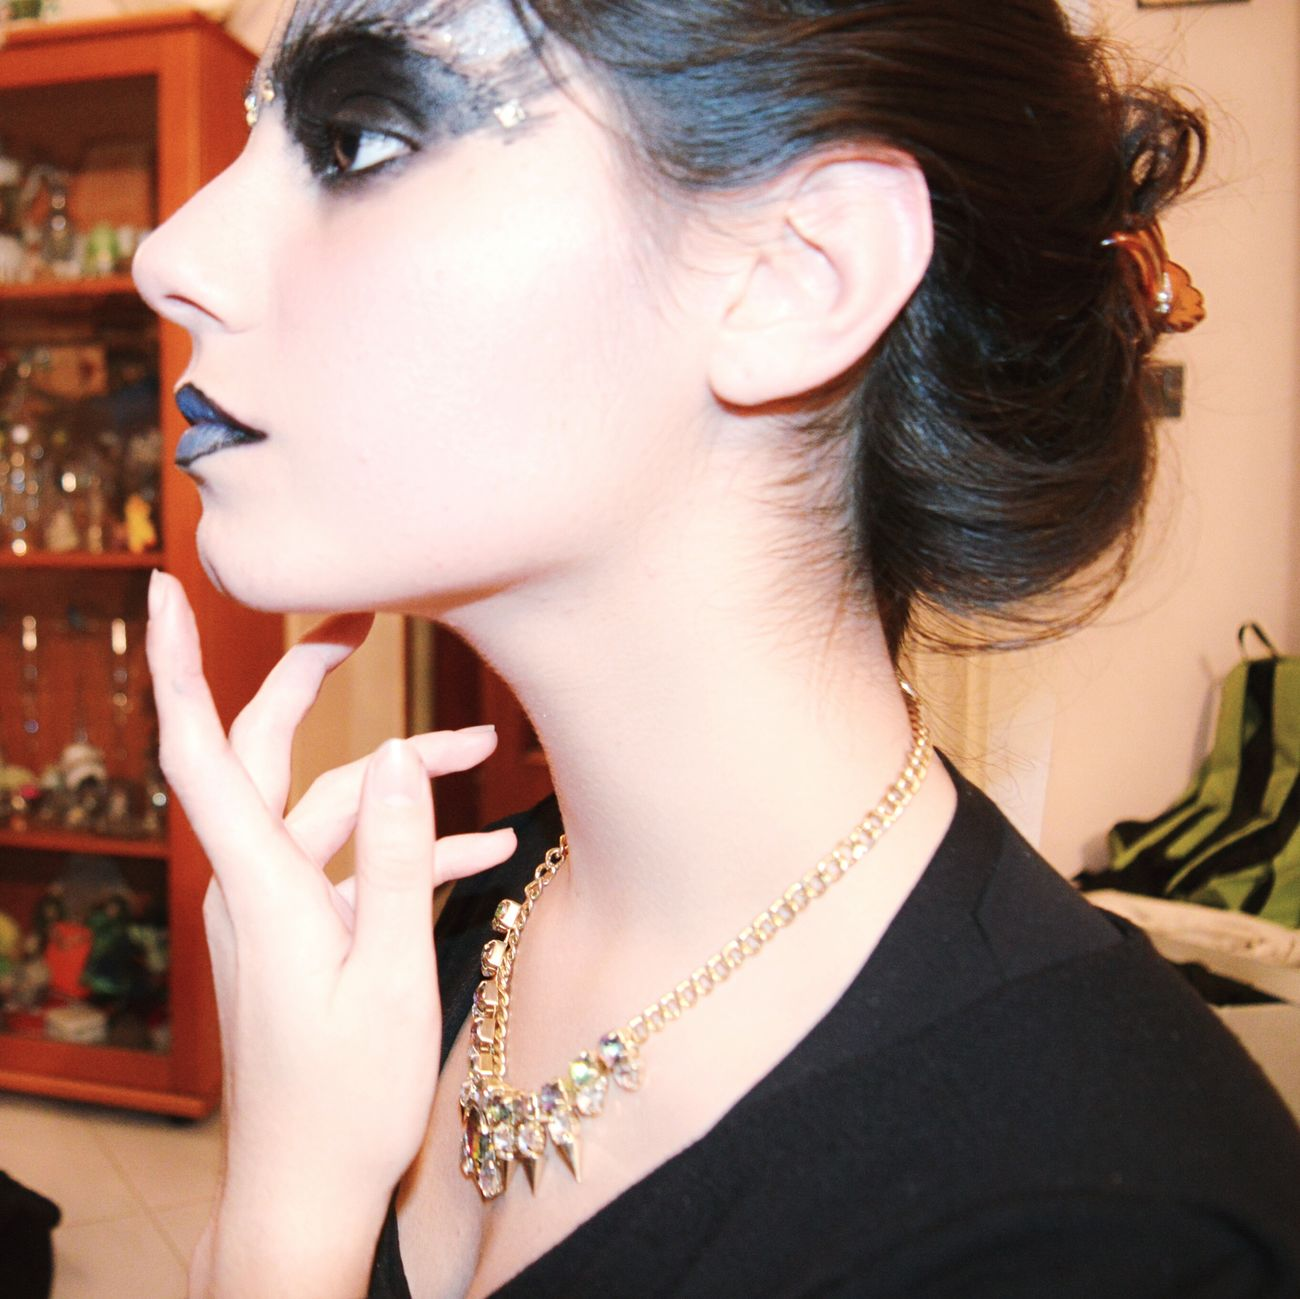 Profile Picture Side Profile Makeup Darkart Hand Blue Lips Necklace Profile Lines & Curves Black Black Eyes EyeEm Gallery Eyeem Profile Photography Woman's Hands Beautiful Woman